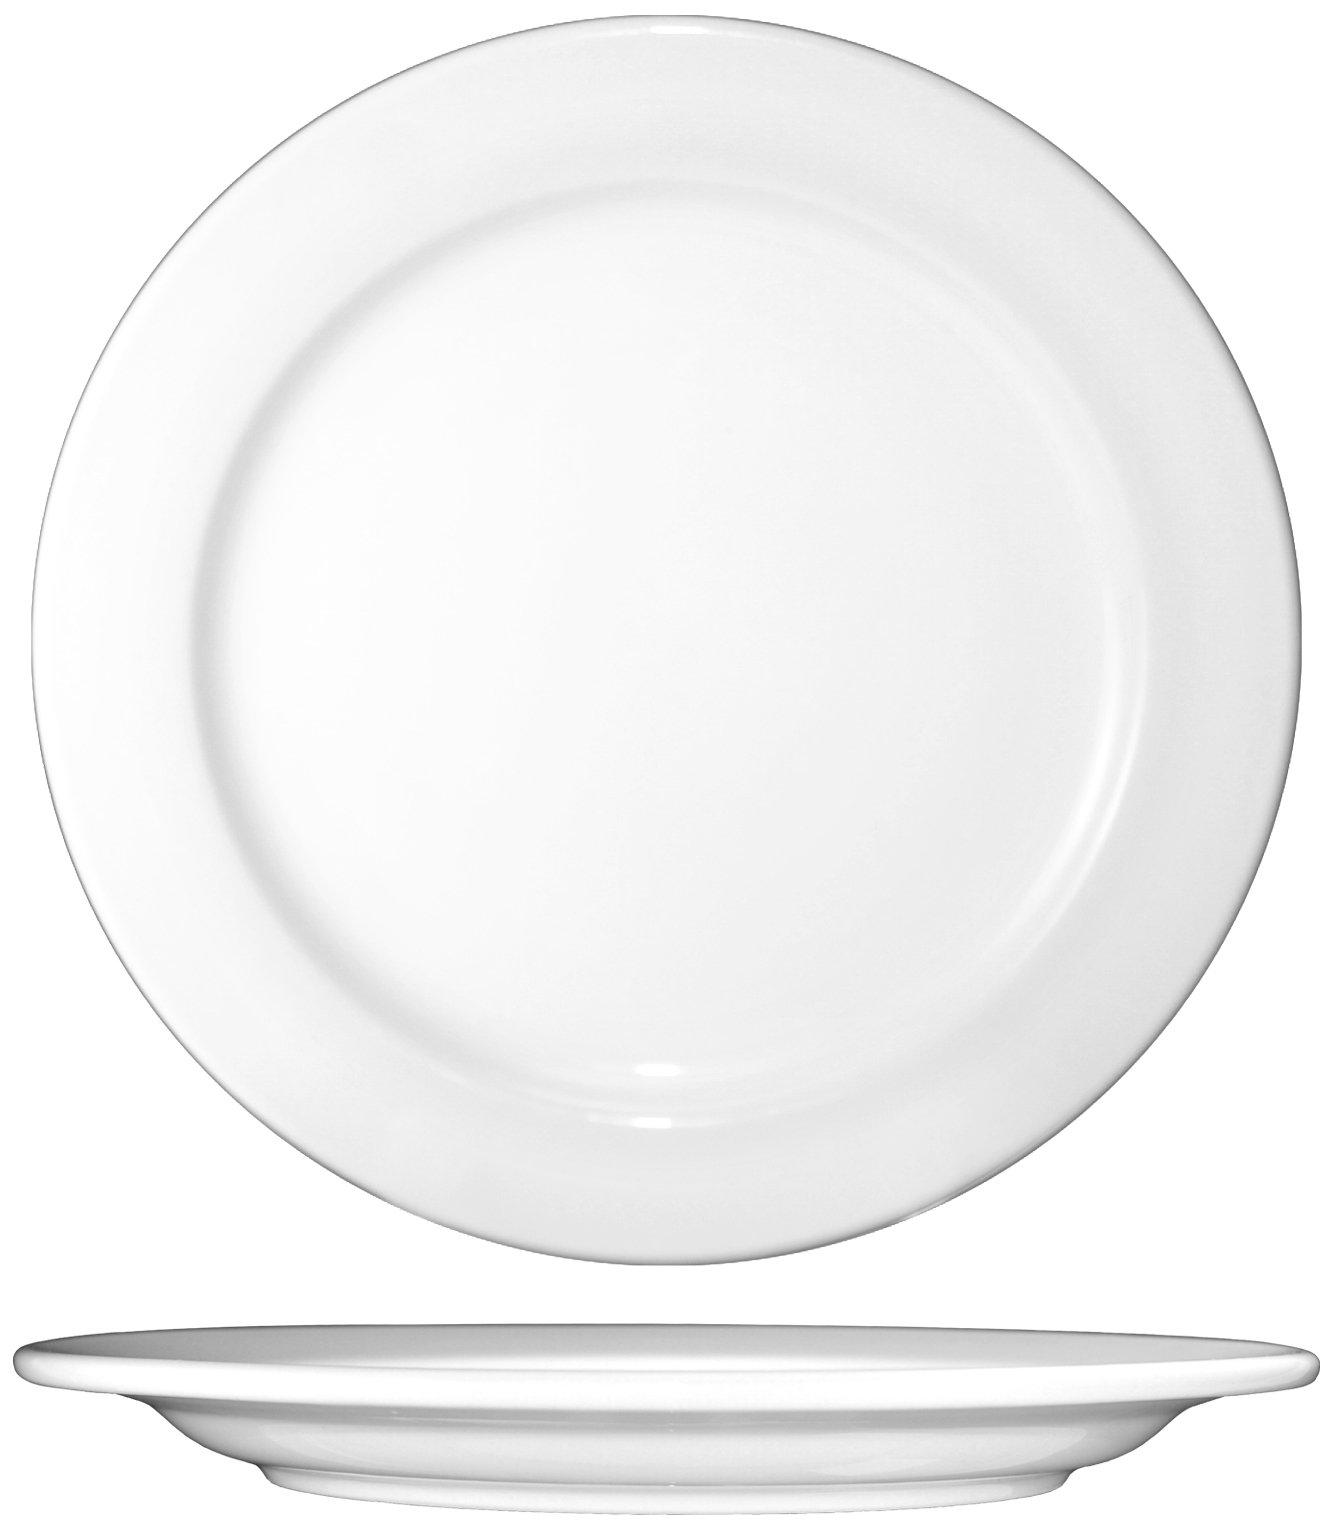 ITI-DO-7 Porcelain Dover 7.125-Inch Plate, 36-Piece, White